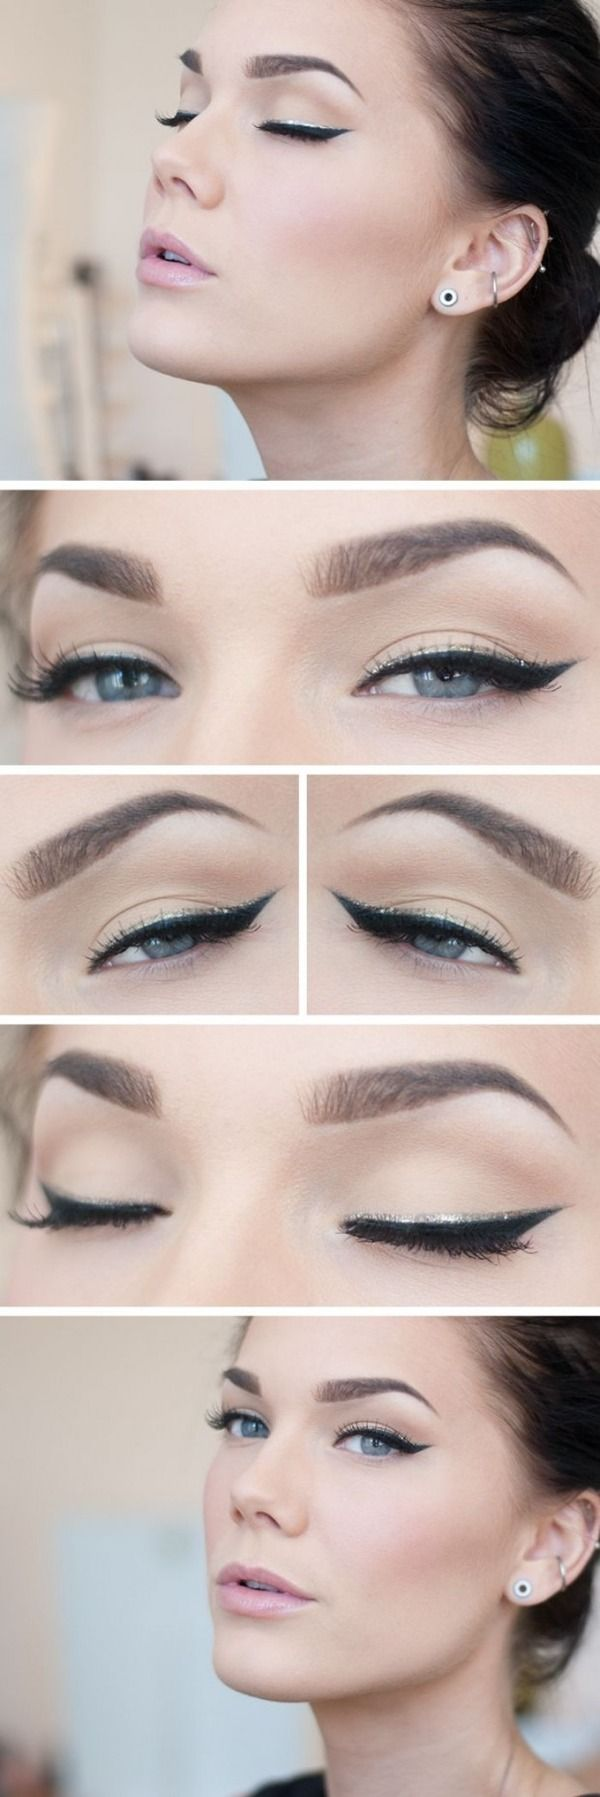 Eyebrows & a playful simple liner